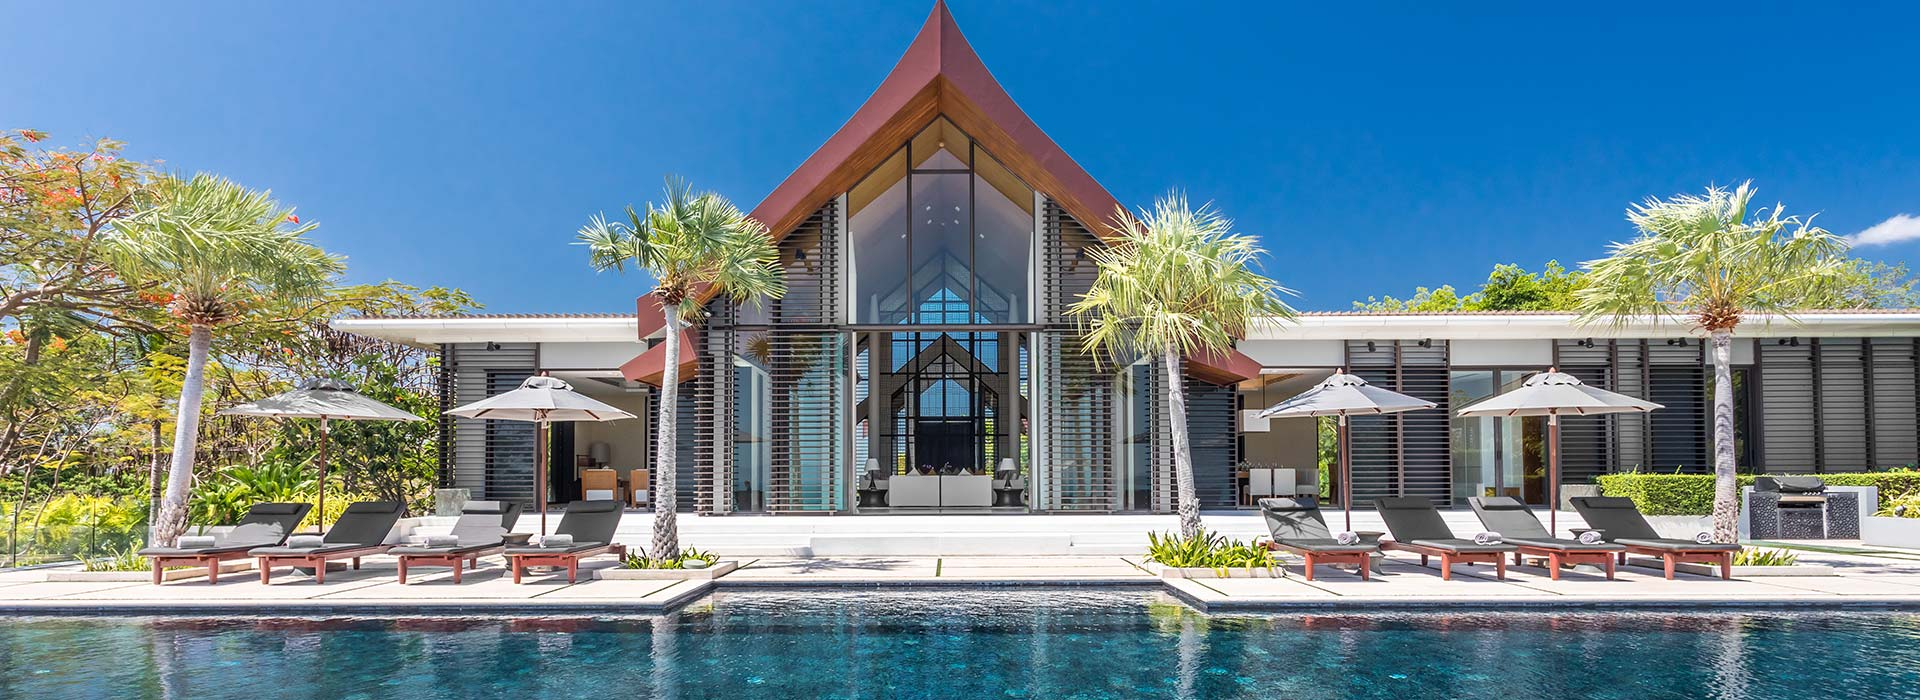 Villa Sawarin 9 Bedrooms<br>with private pool